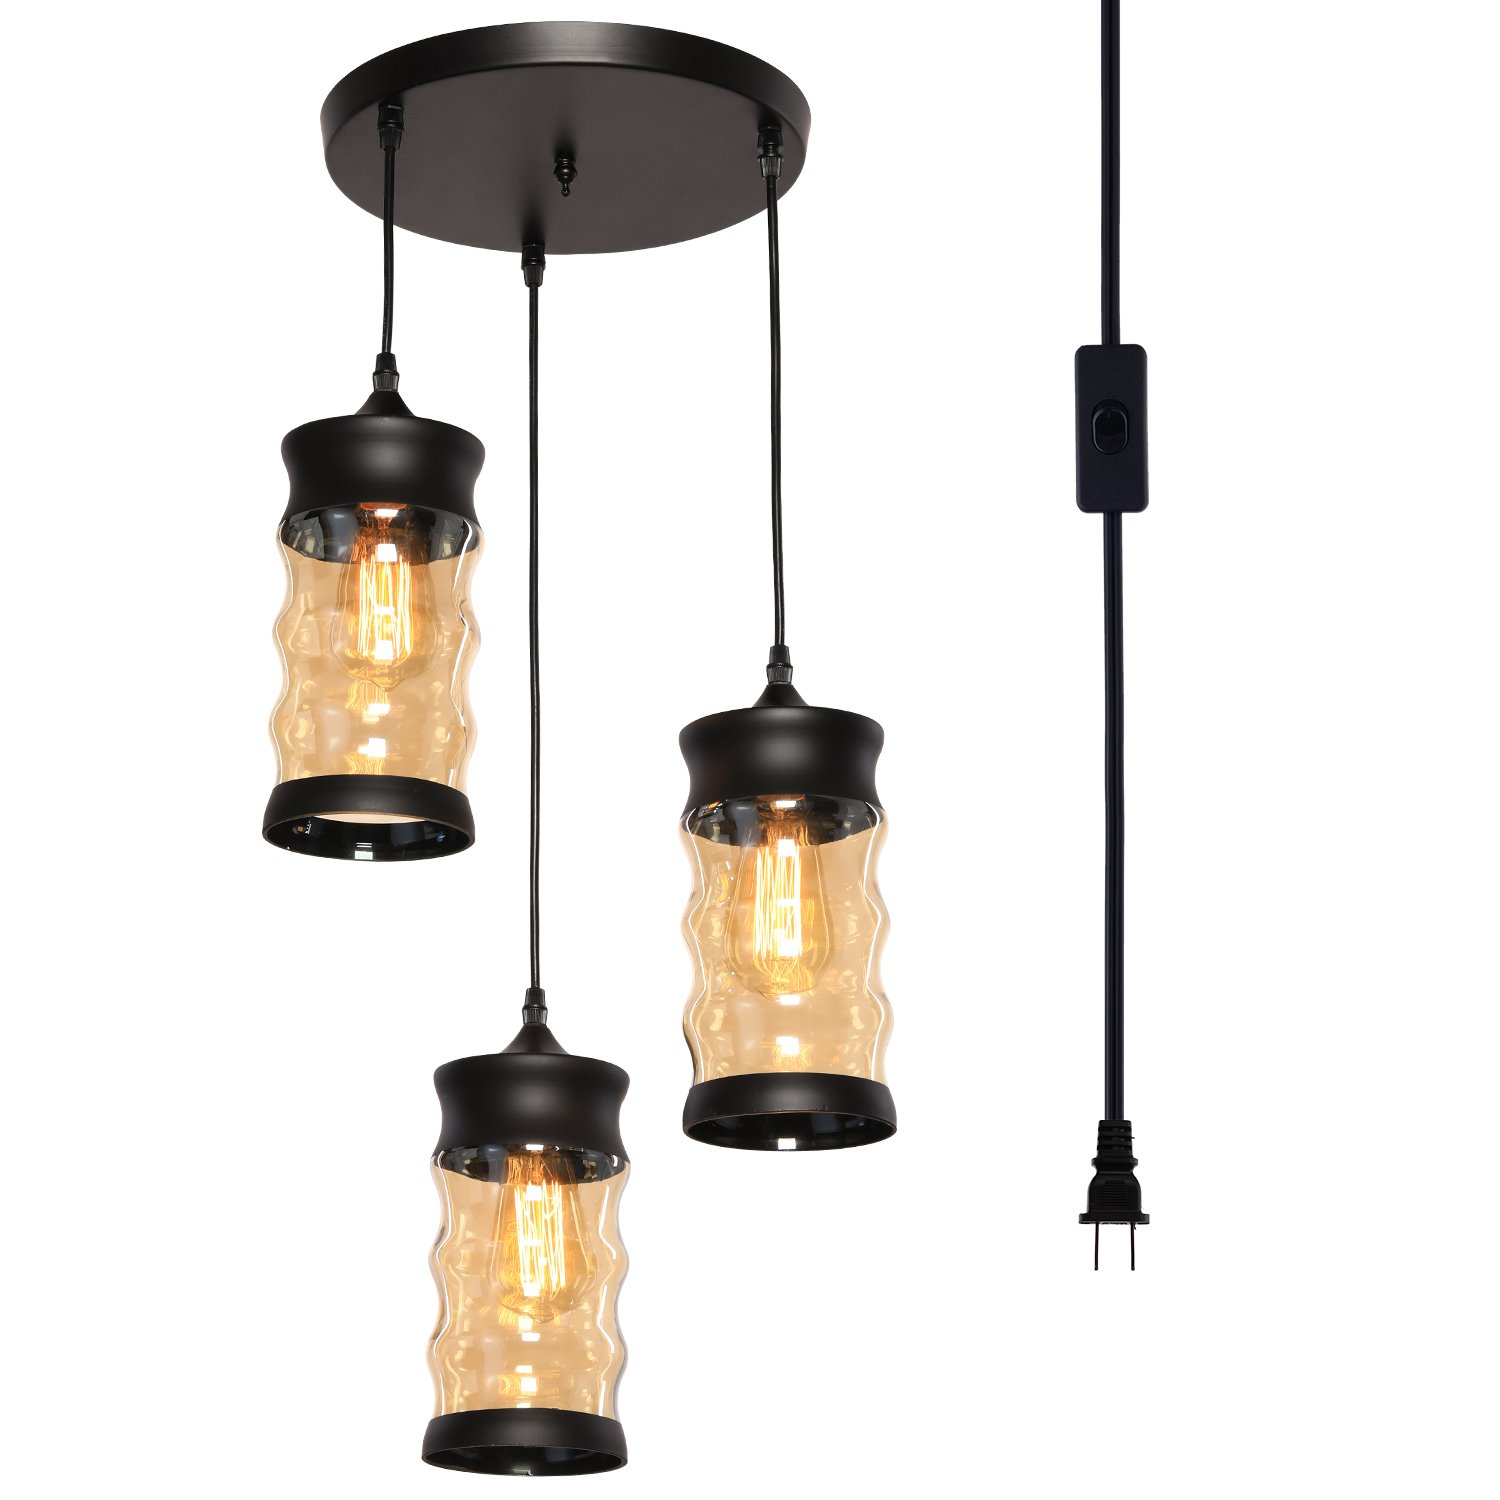 HMVPL 3-Lights Vintage Glass Jar Chandelier Pendant Light with 16.4 Ft Plug-in Cord and On/Off Toggle Switch, Industrial Hanging Lamps for Kitchen Island Table Dining Room Bedroom Foyer Porch Hallway